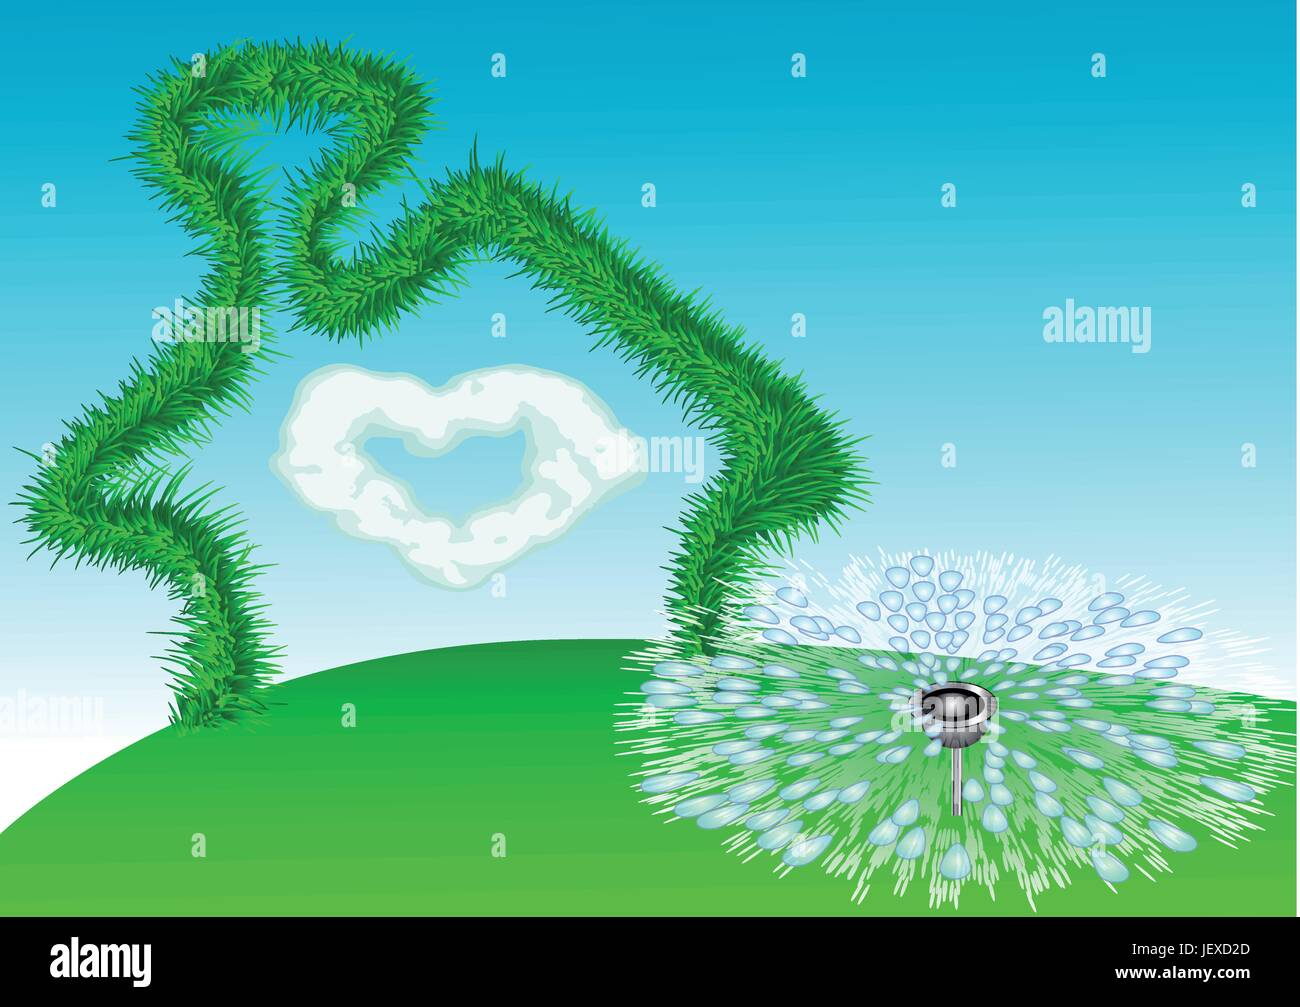 house, building, garden, cloud, summer, summerly, fantasy, dreams, imagination, - Stock Vector